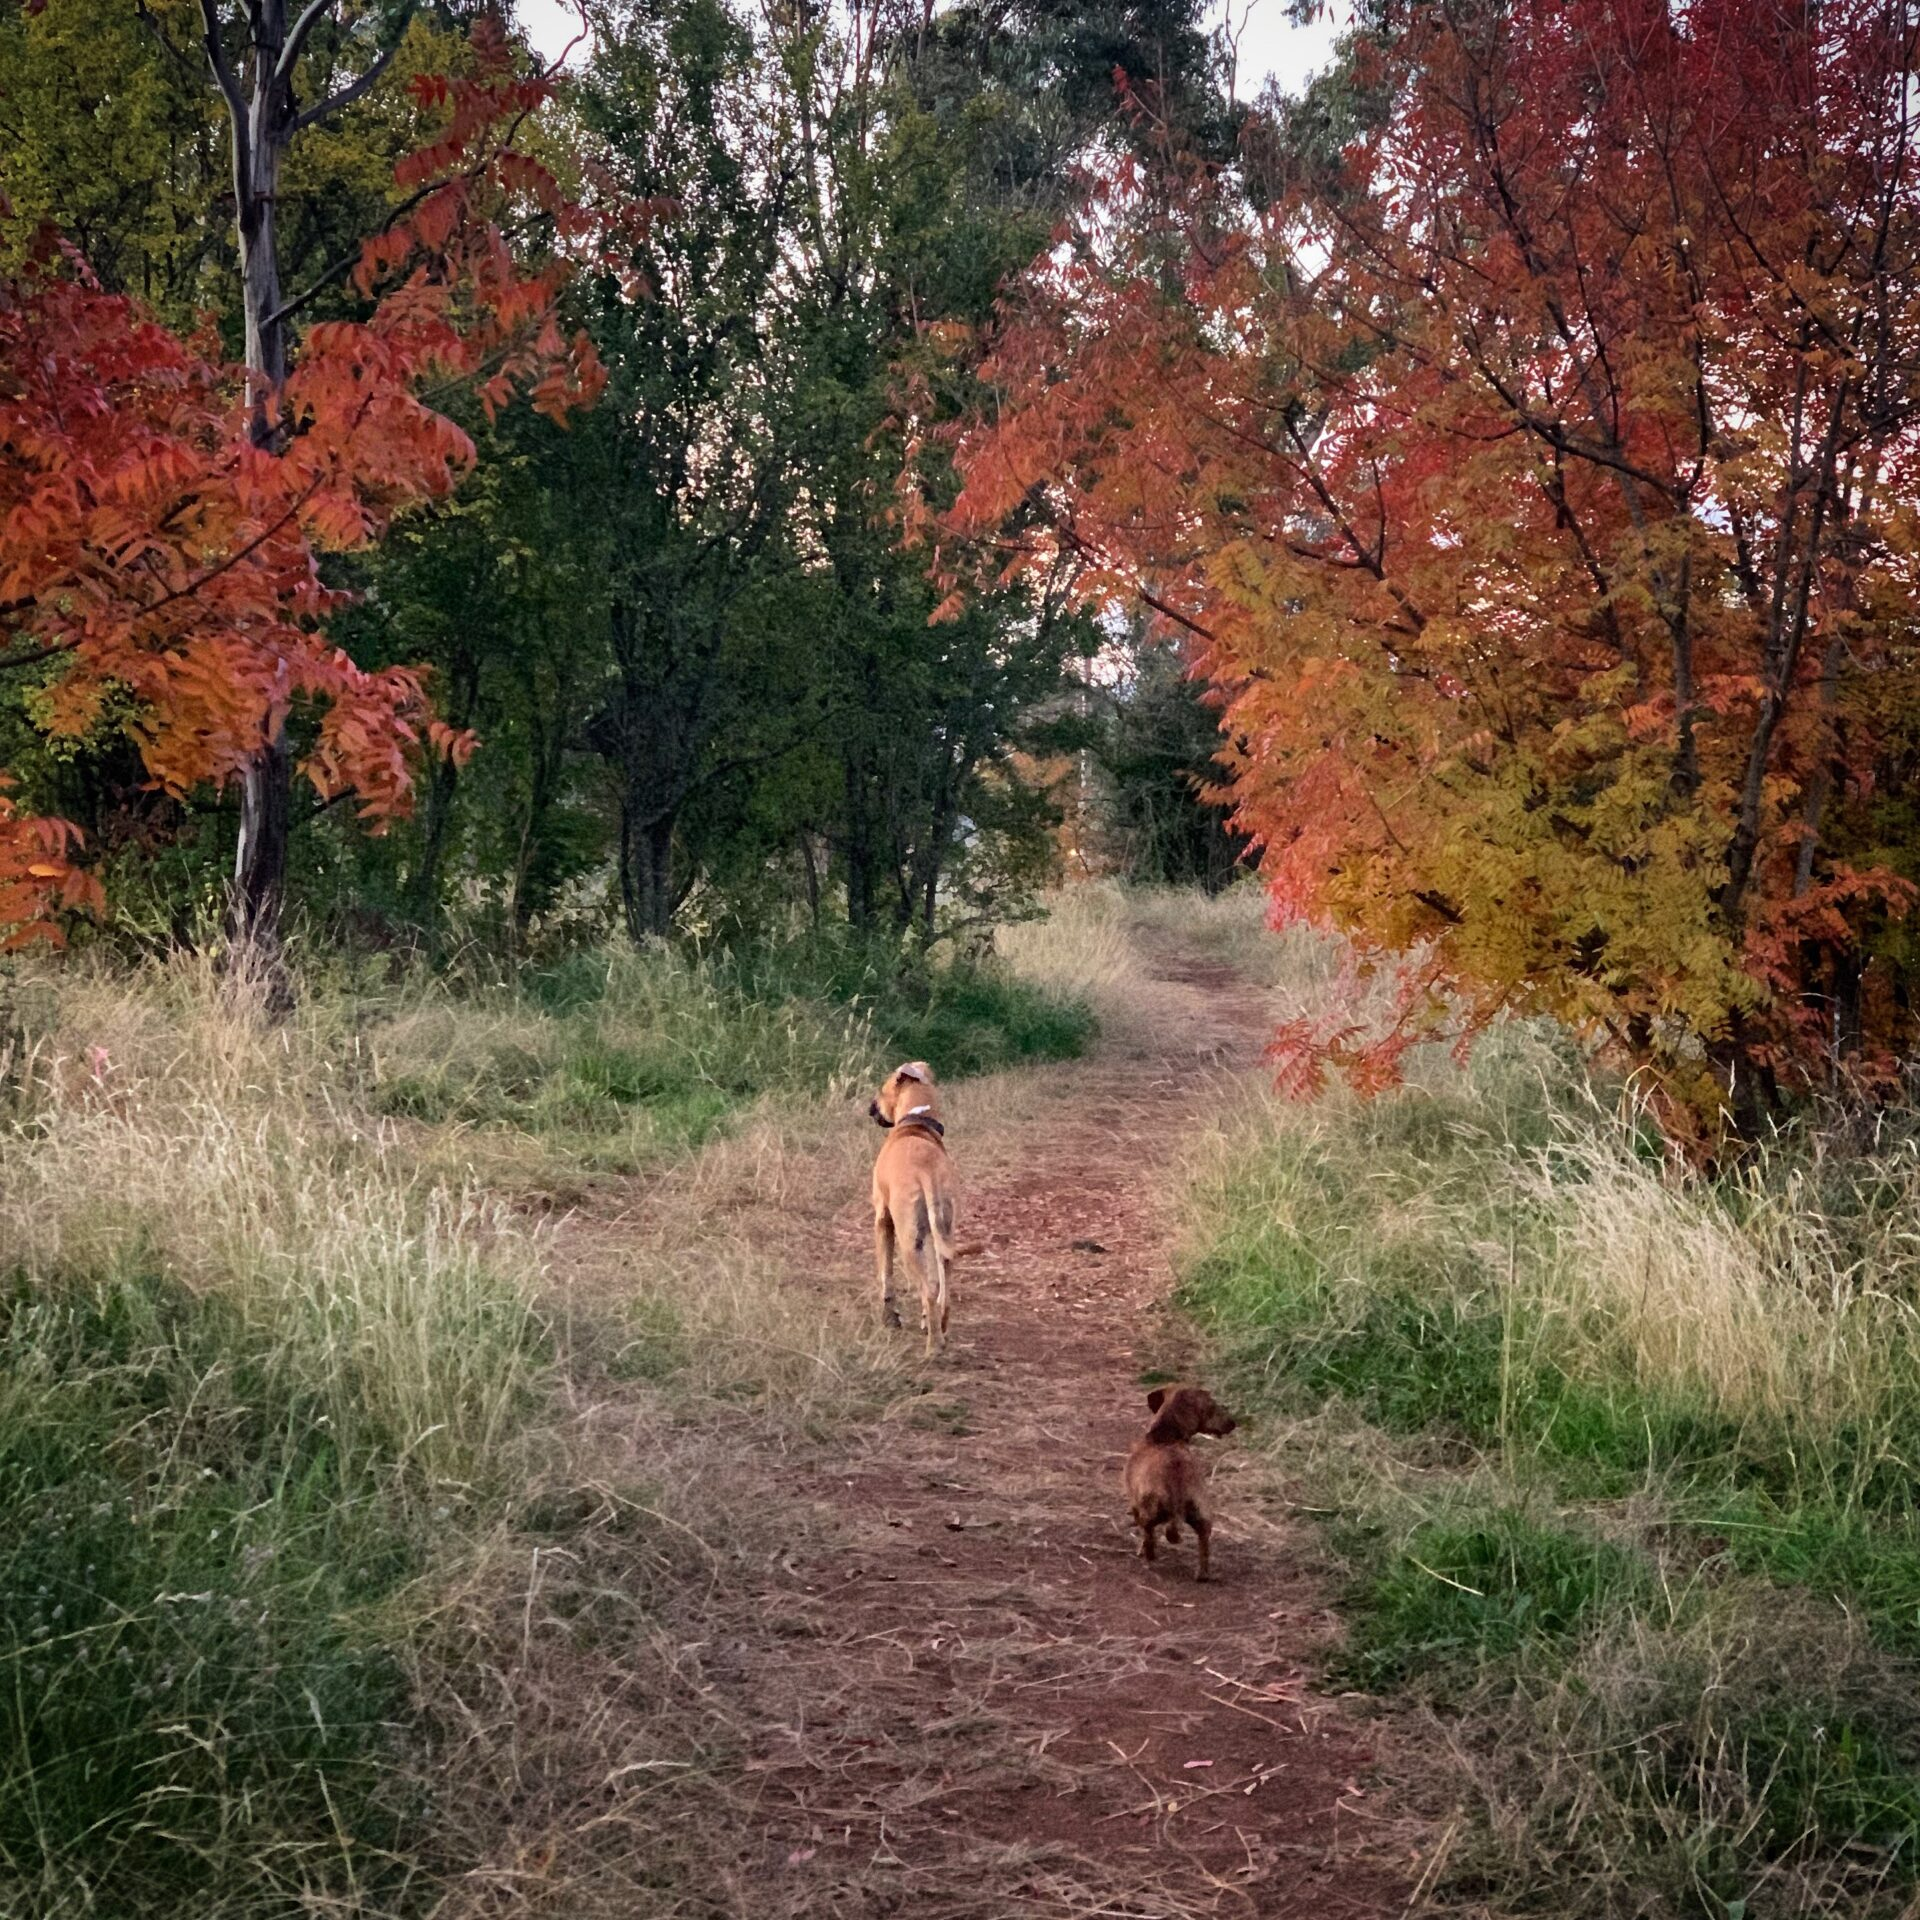 Kirsti Abbott's dogs walking down a path surrounded by autumn leaves